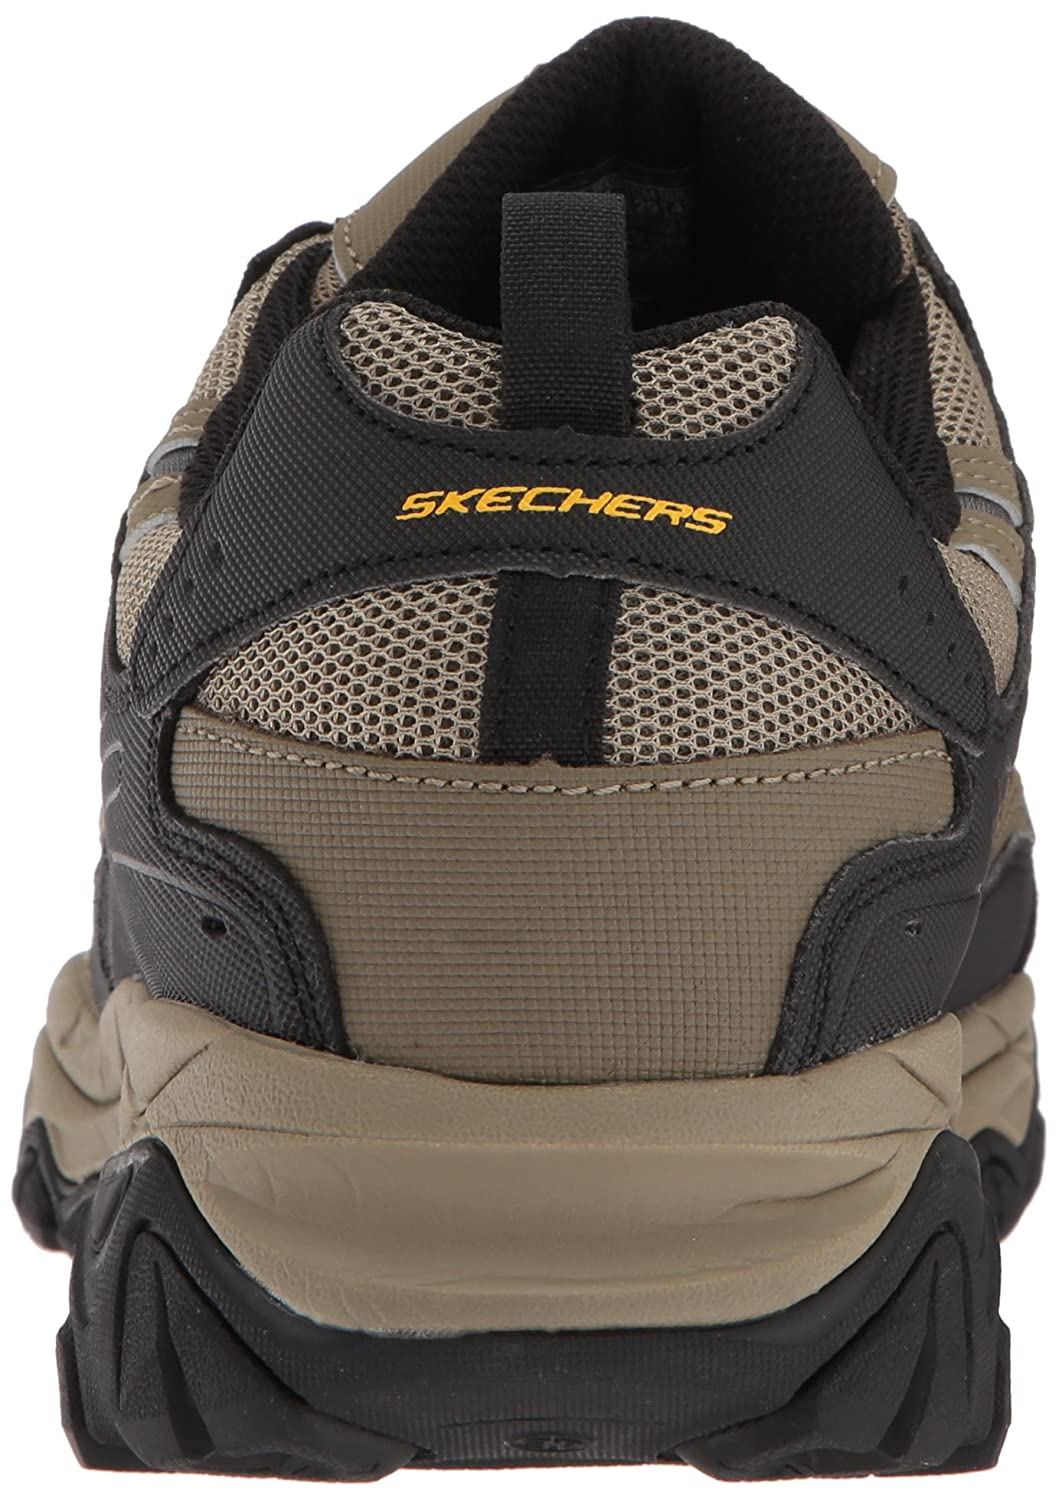 Skechers-Afterburn-Memory-Foam-M-Fit-Men-039-s-Sport-After-Burn-Sneakers-Shoes thumbnail 74